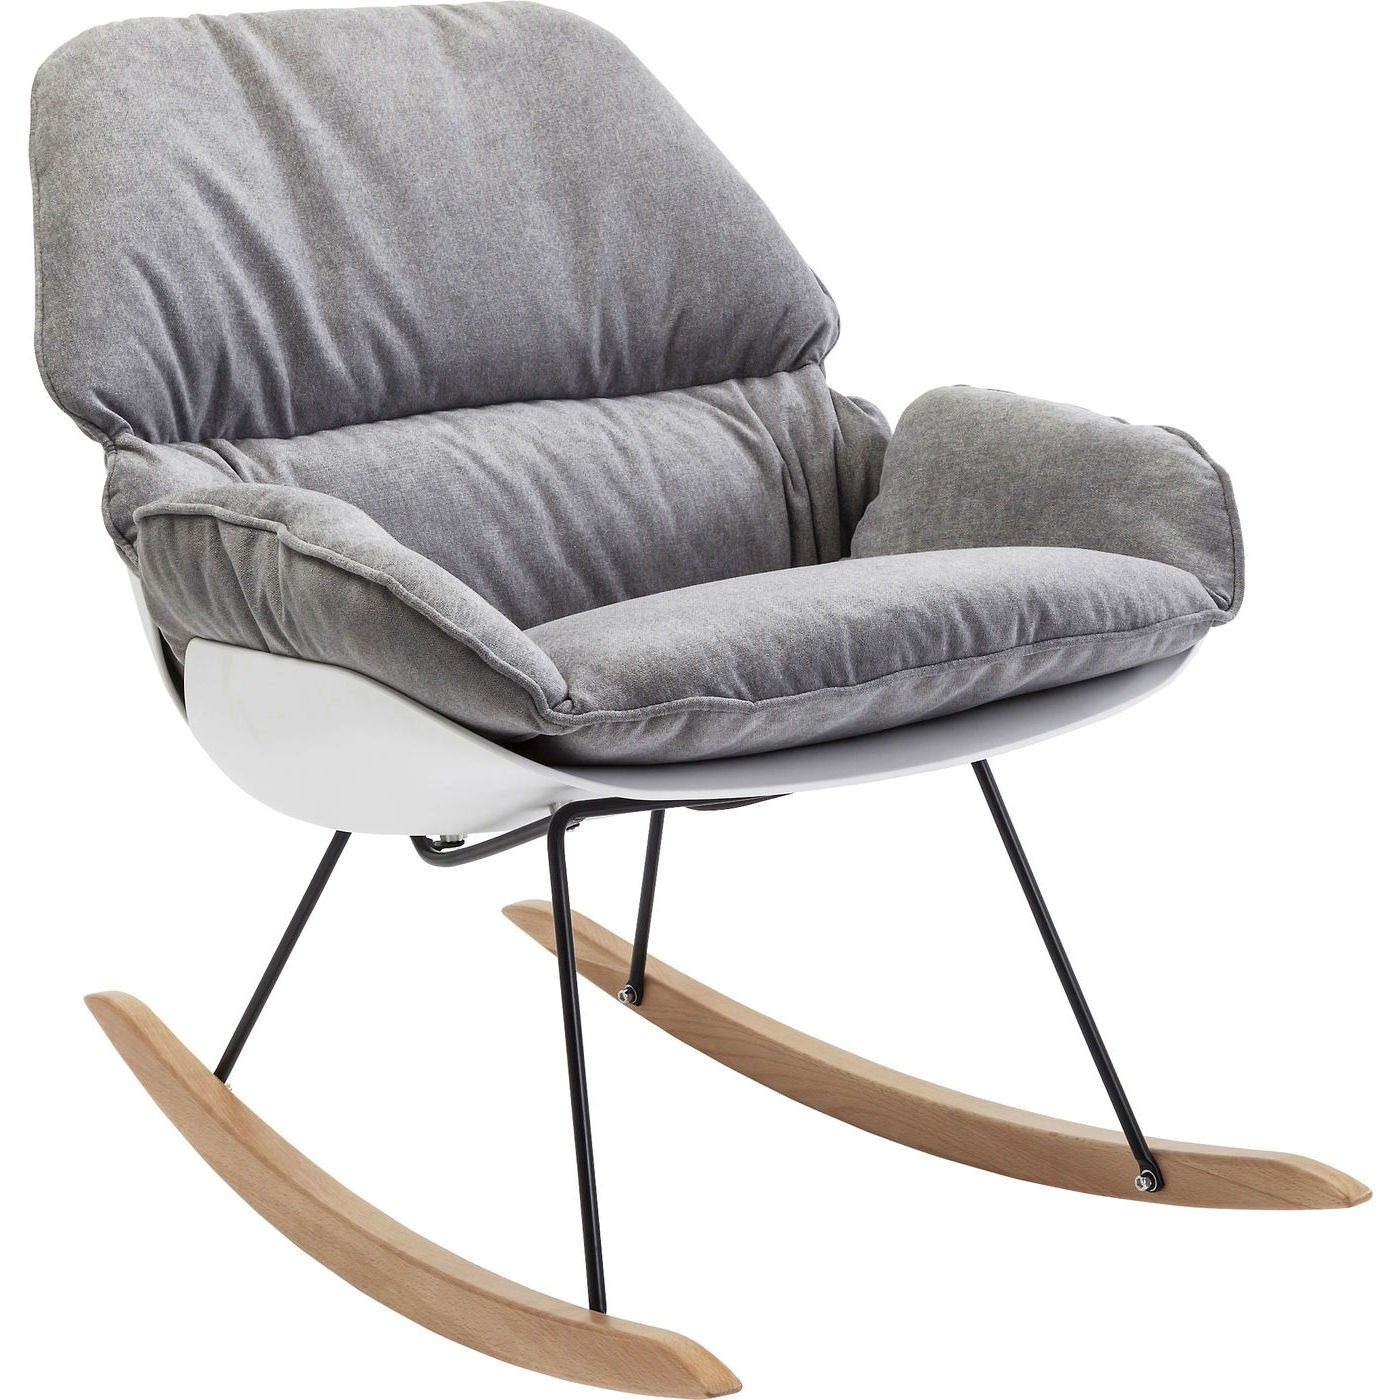 Sessel Kare Schaukelstuhl Alicante Sessel Kare Design Lounge Chair